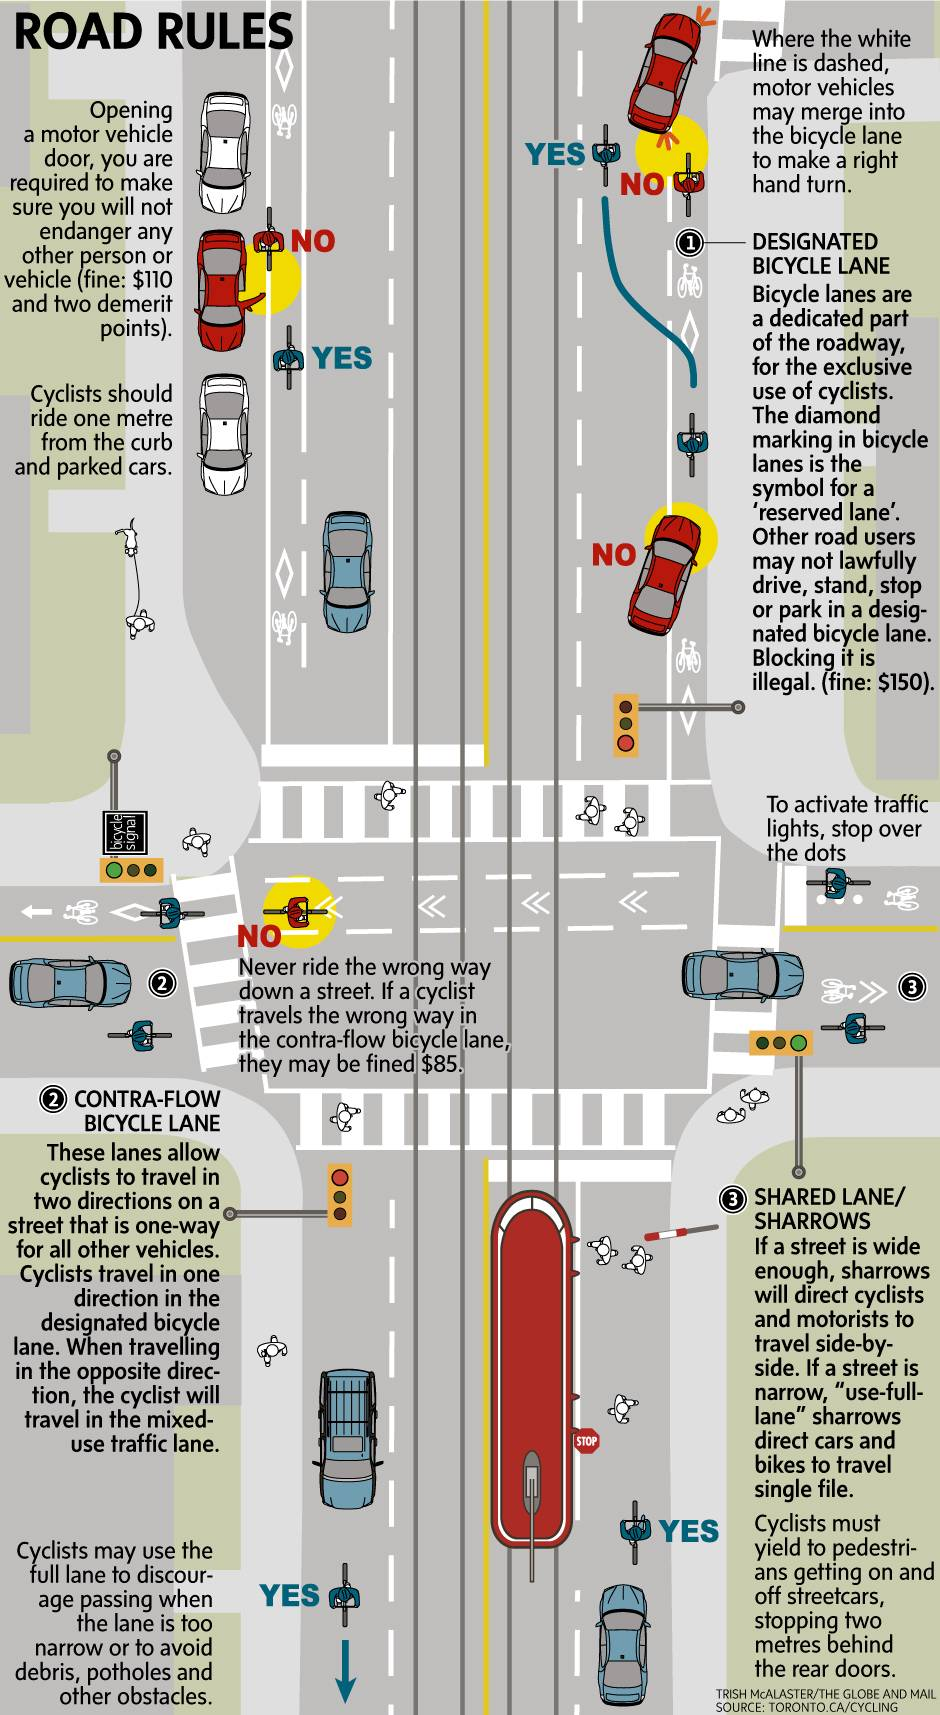 Cars vs. bicycles: Get out of my lane! (Can't we all just get along?)